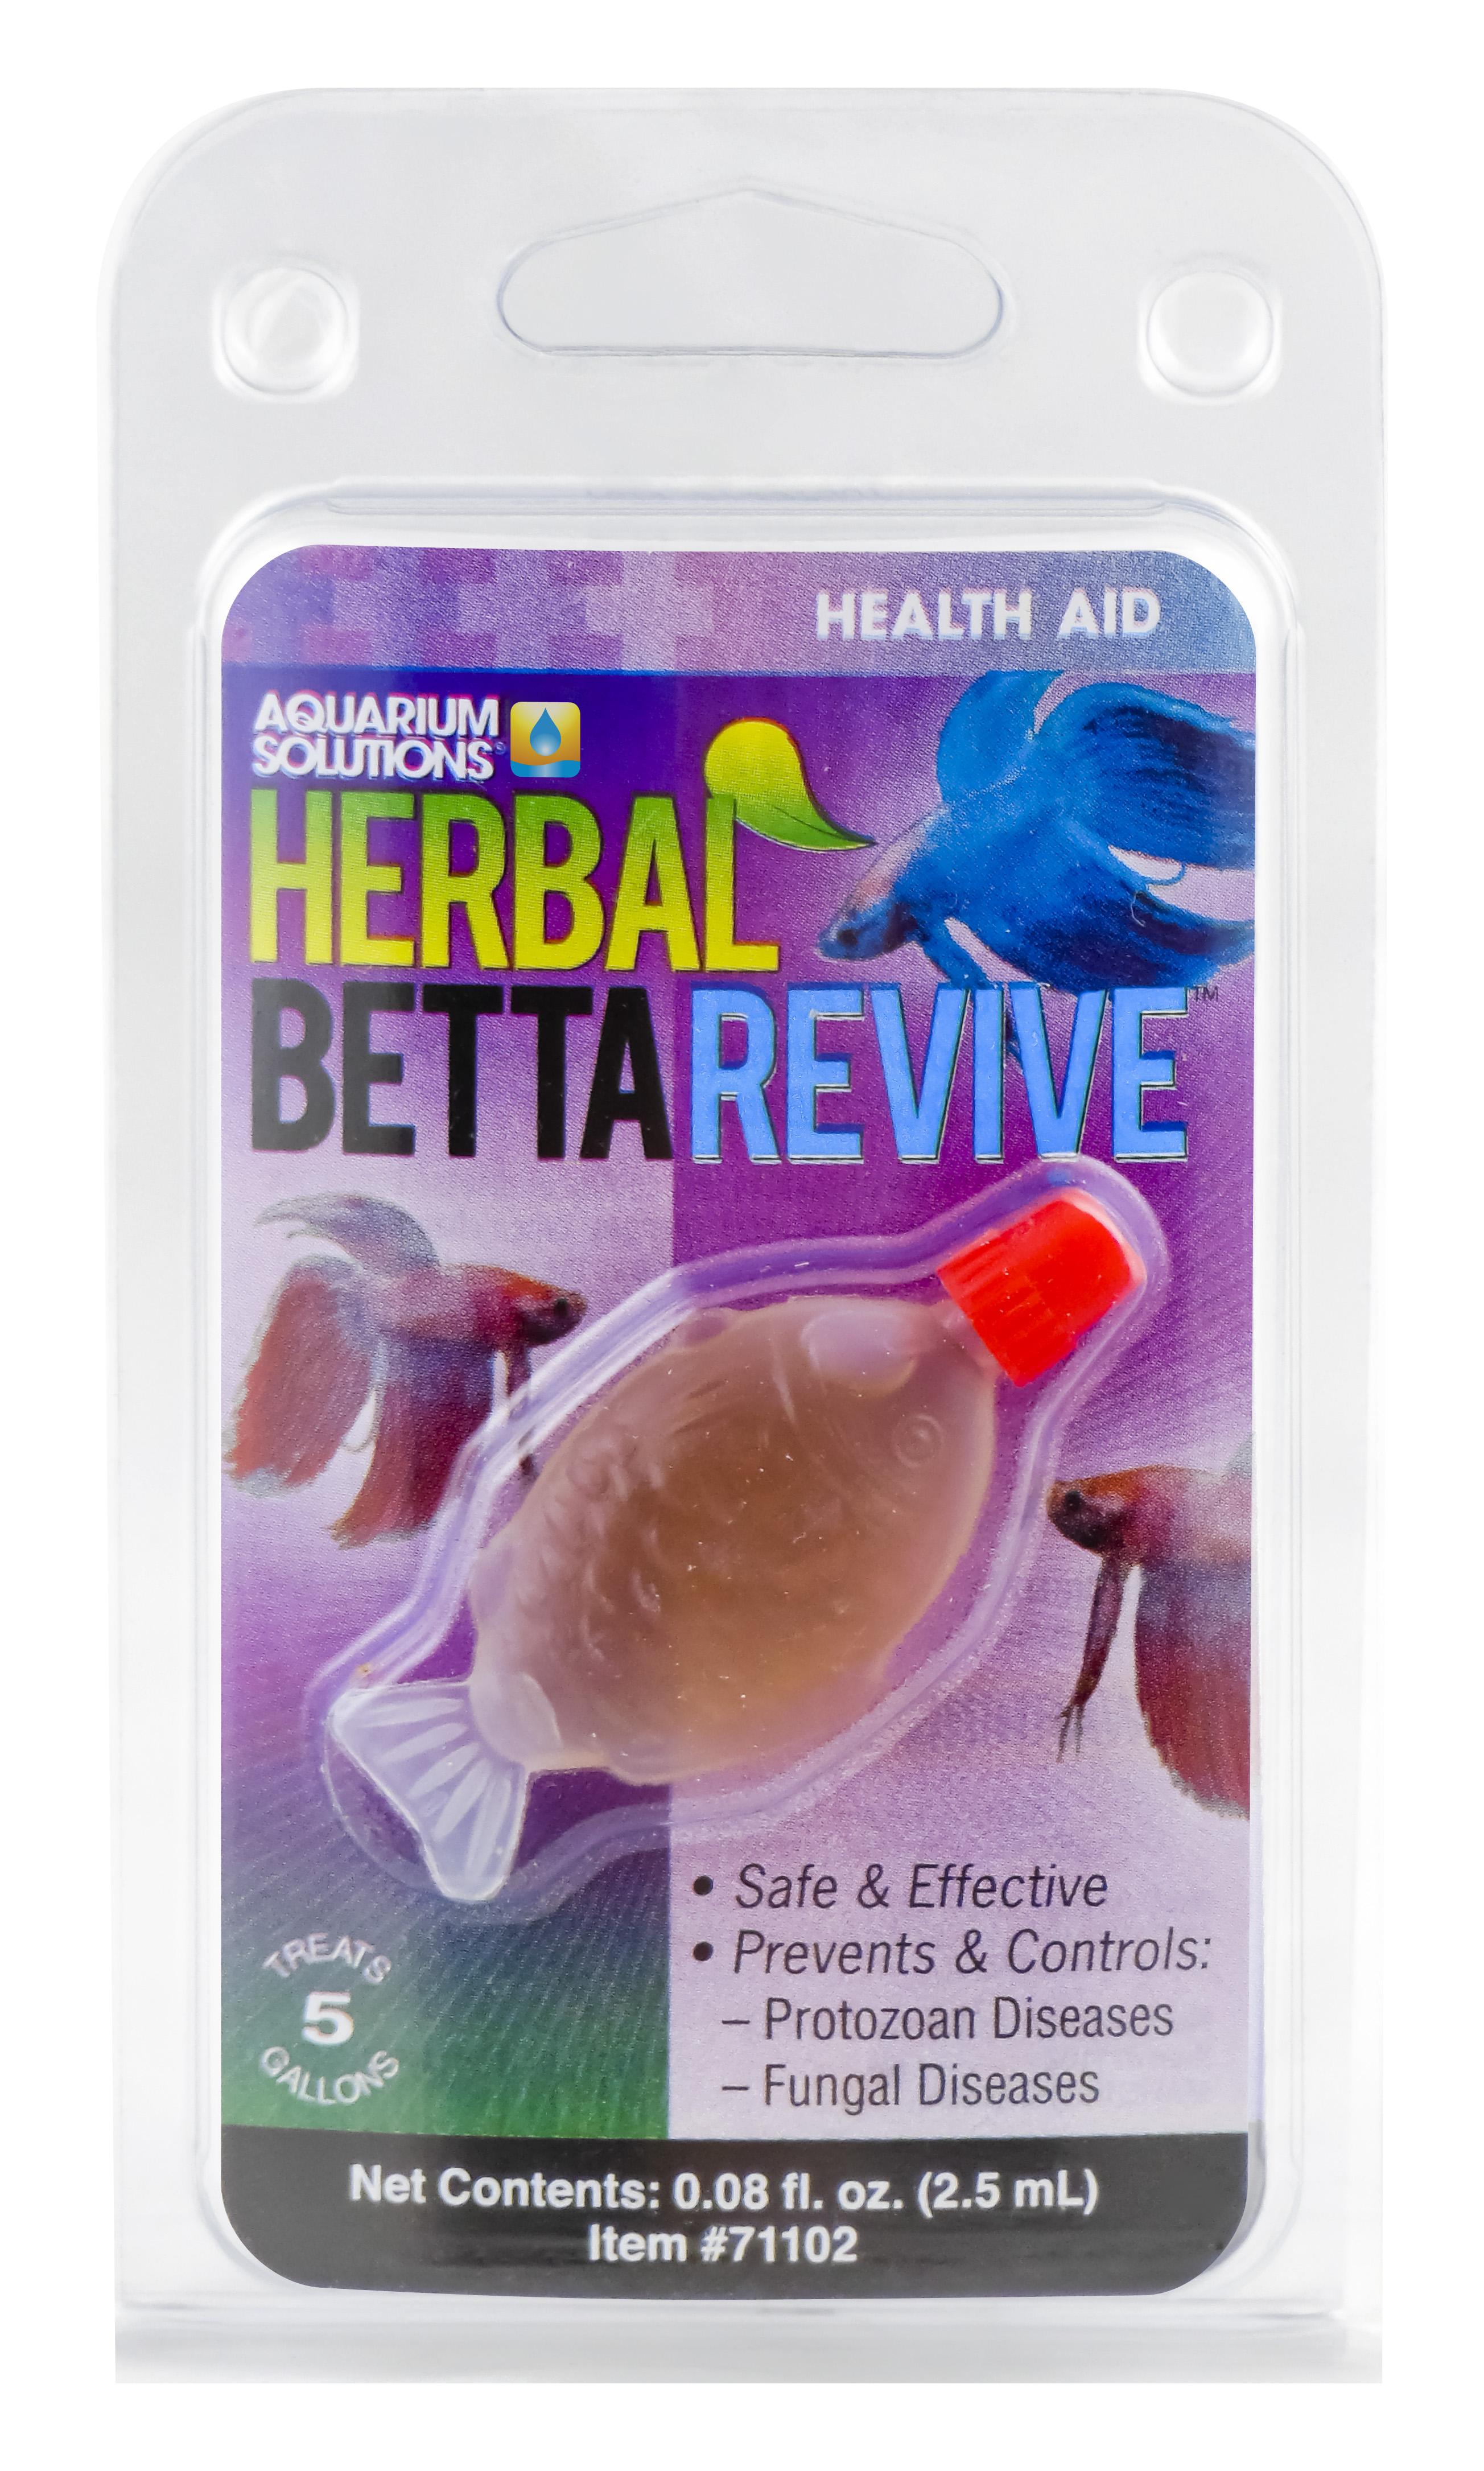 Aquarium Solutions Herbal Betta Revive Health Aid